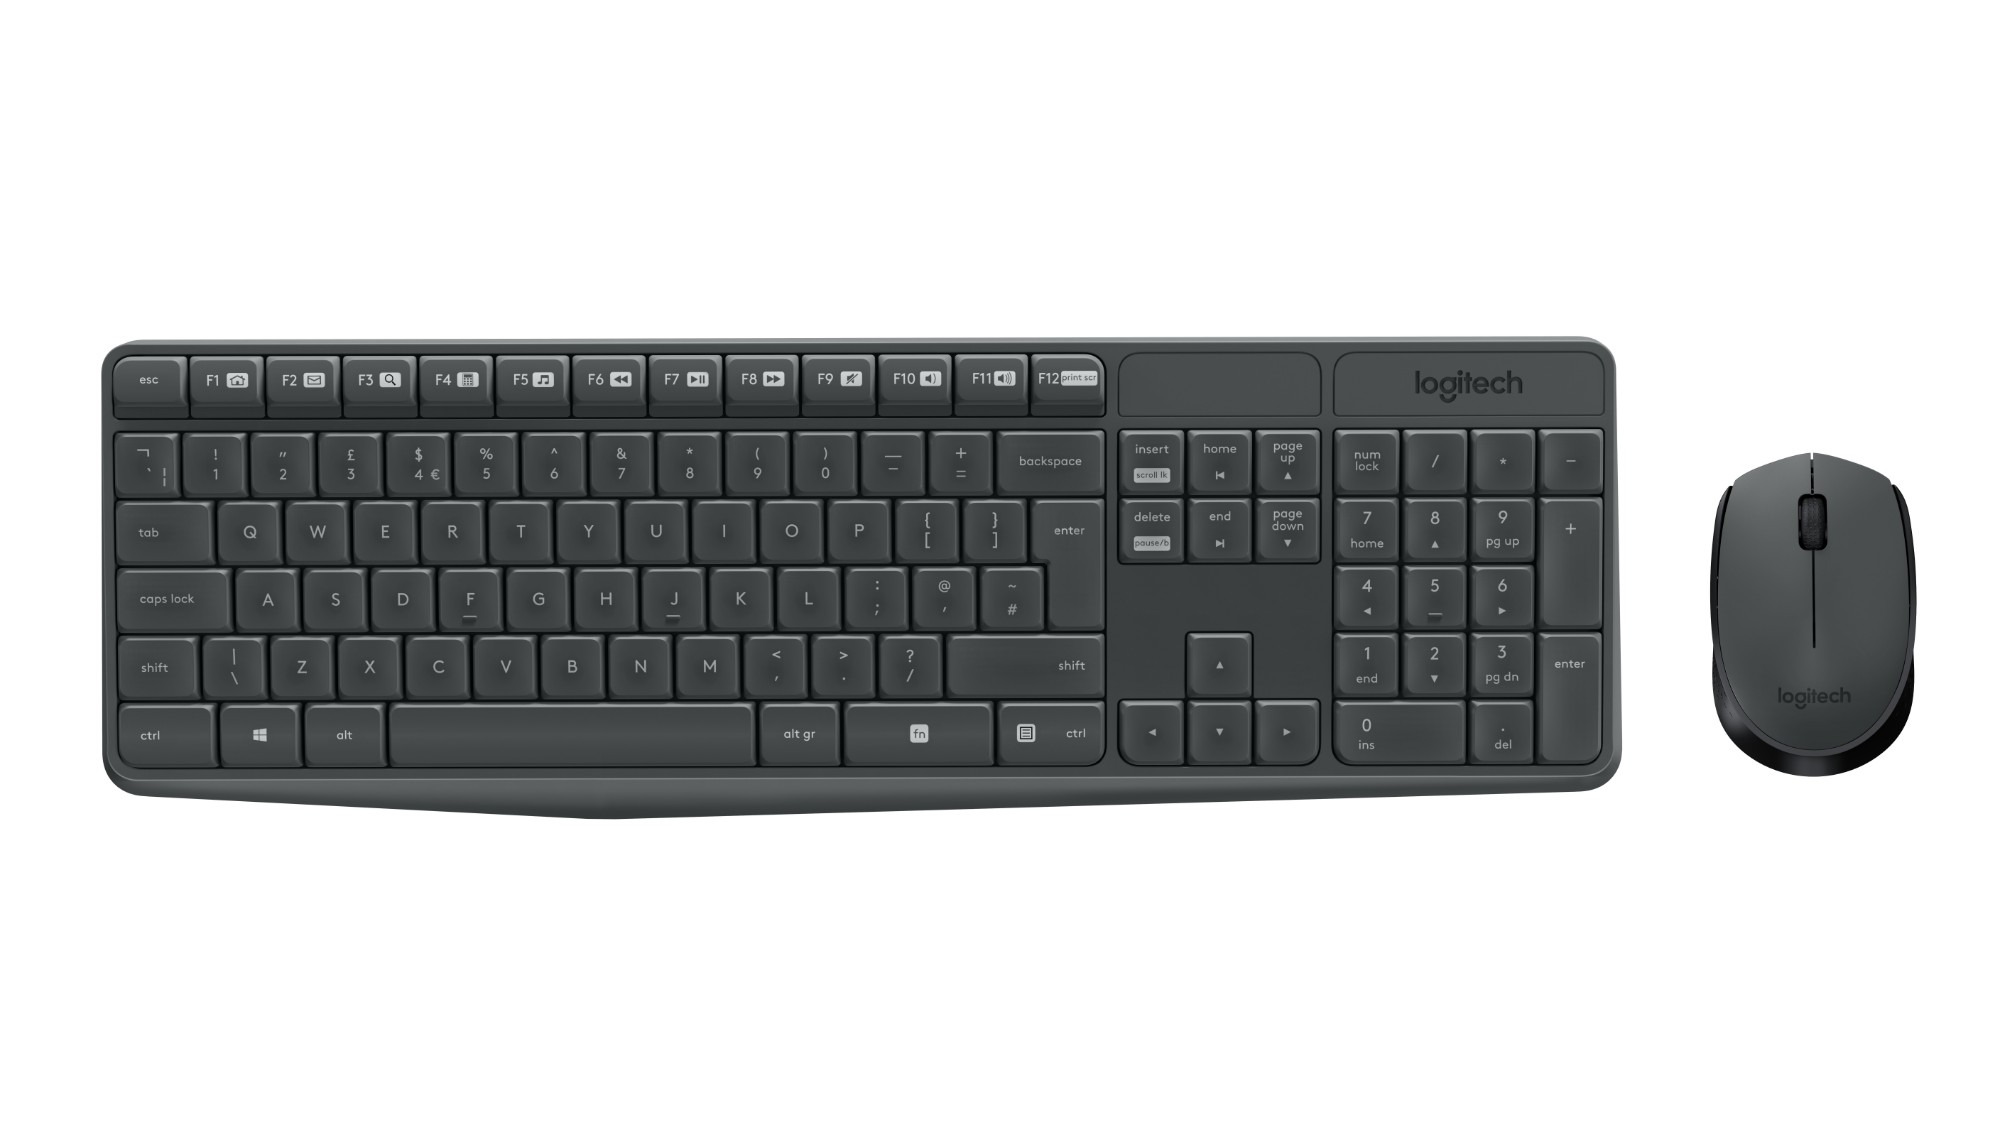 MK235 WIRELESS KEYBOARD / MOUSE GREY-FRA-2.4GHZ-CENTRAL          IN